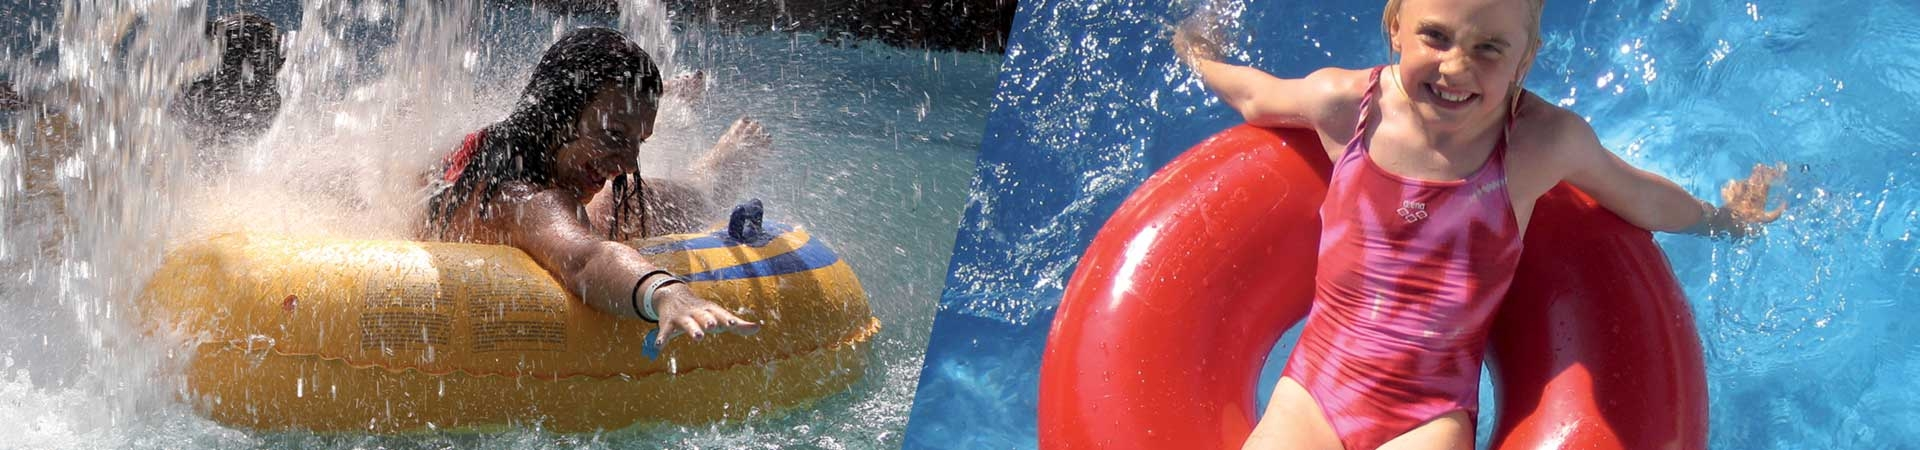 Rotomolded tubes for waterparks